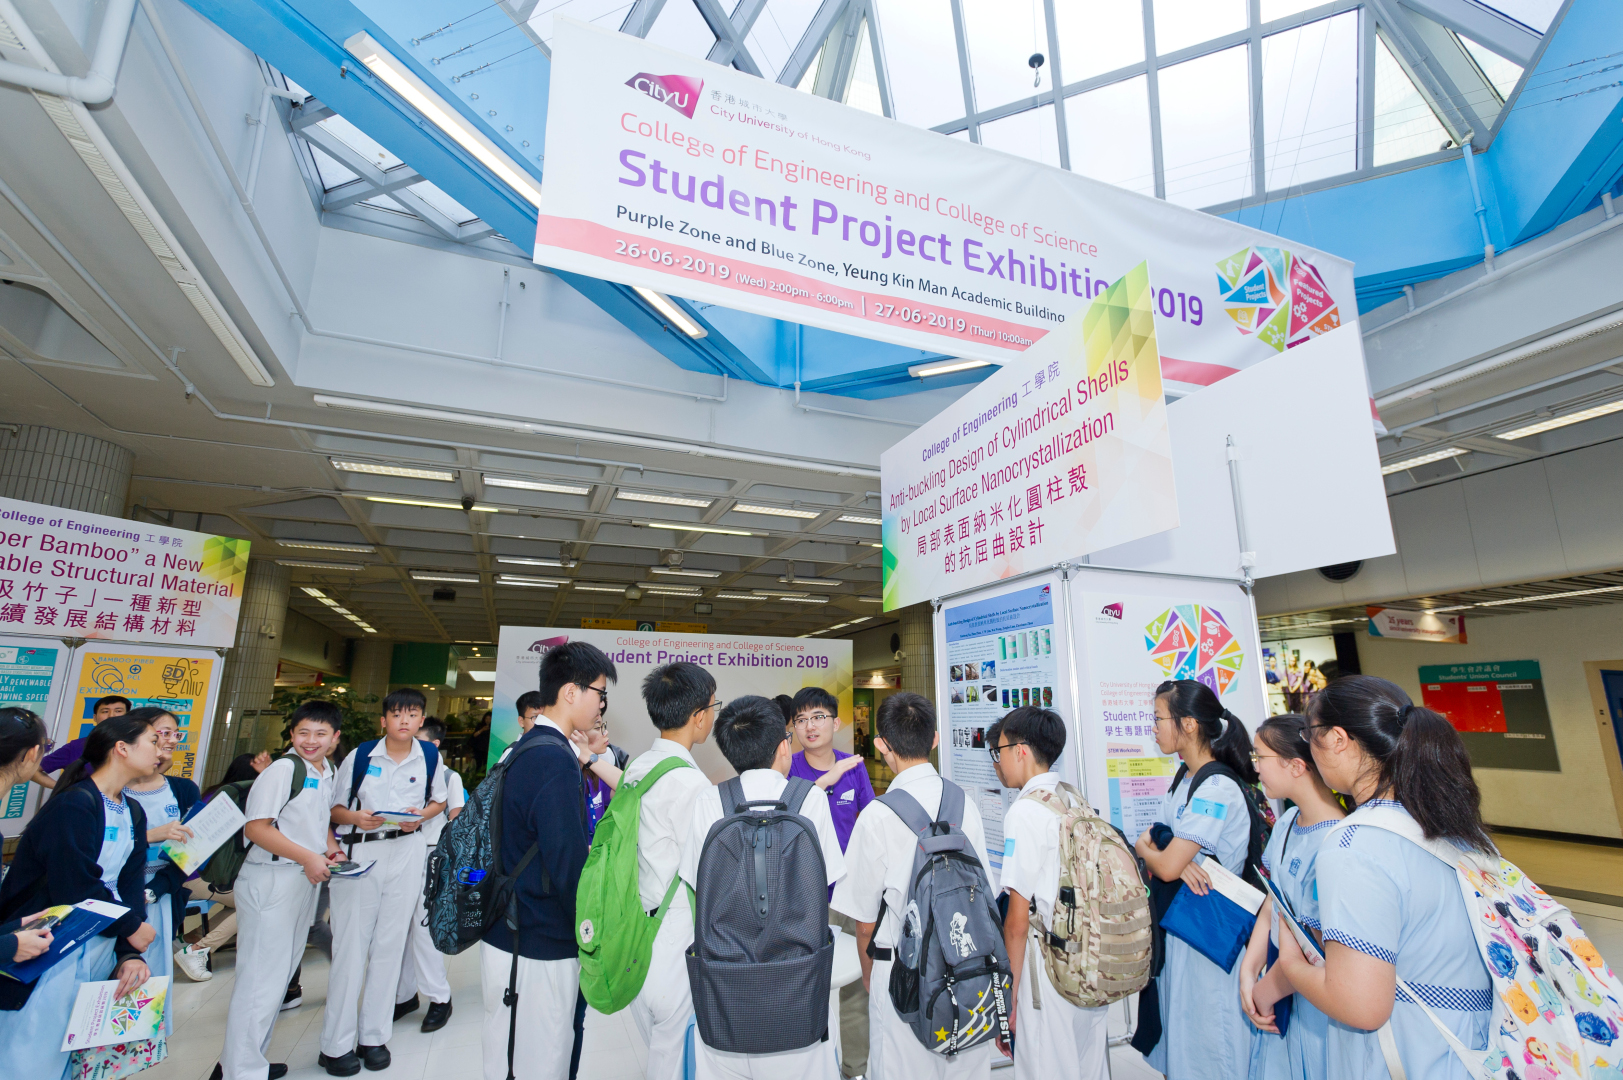 Student Project Exhibition 2019   College of Science